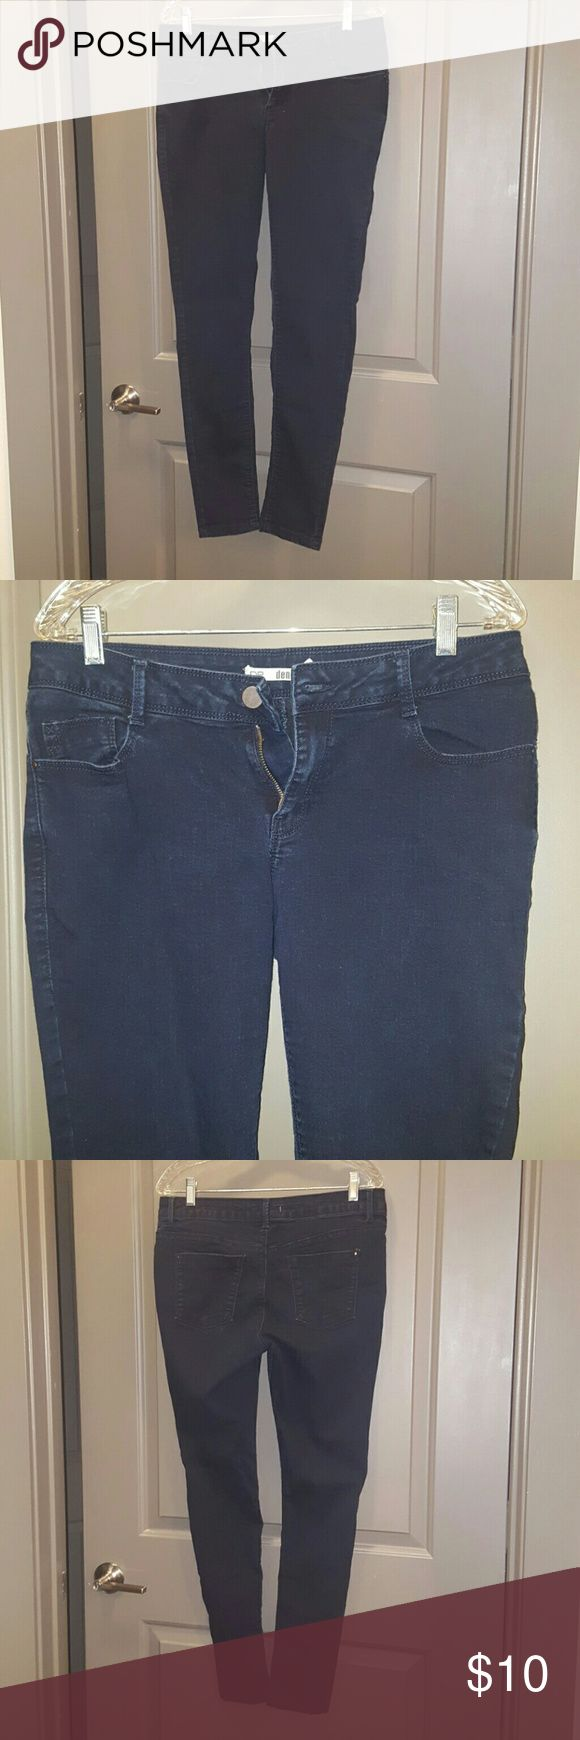 Dorthy Perkins faded black skinny jeans Dorthy Perkins faded black skinny jeans size 10. Love DP jeans which always fit nicely, since  I have thick thighs and big calves. Honestly with this one, my bootie doesn't fill the bum area. Hehe Dorothy Perkins Jeans Skinny